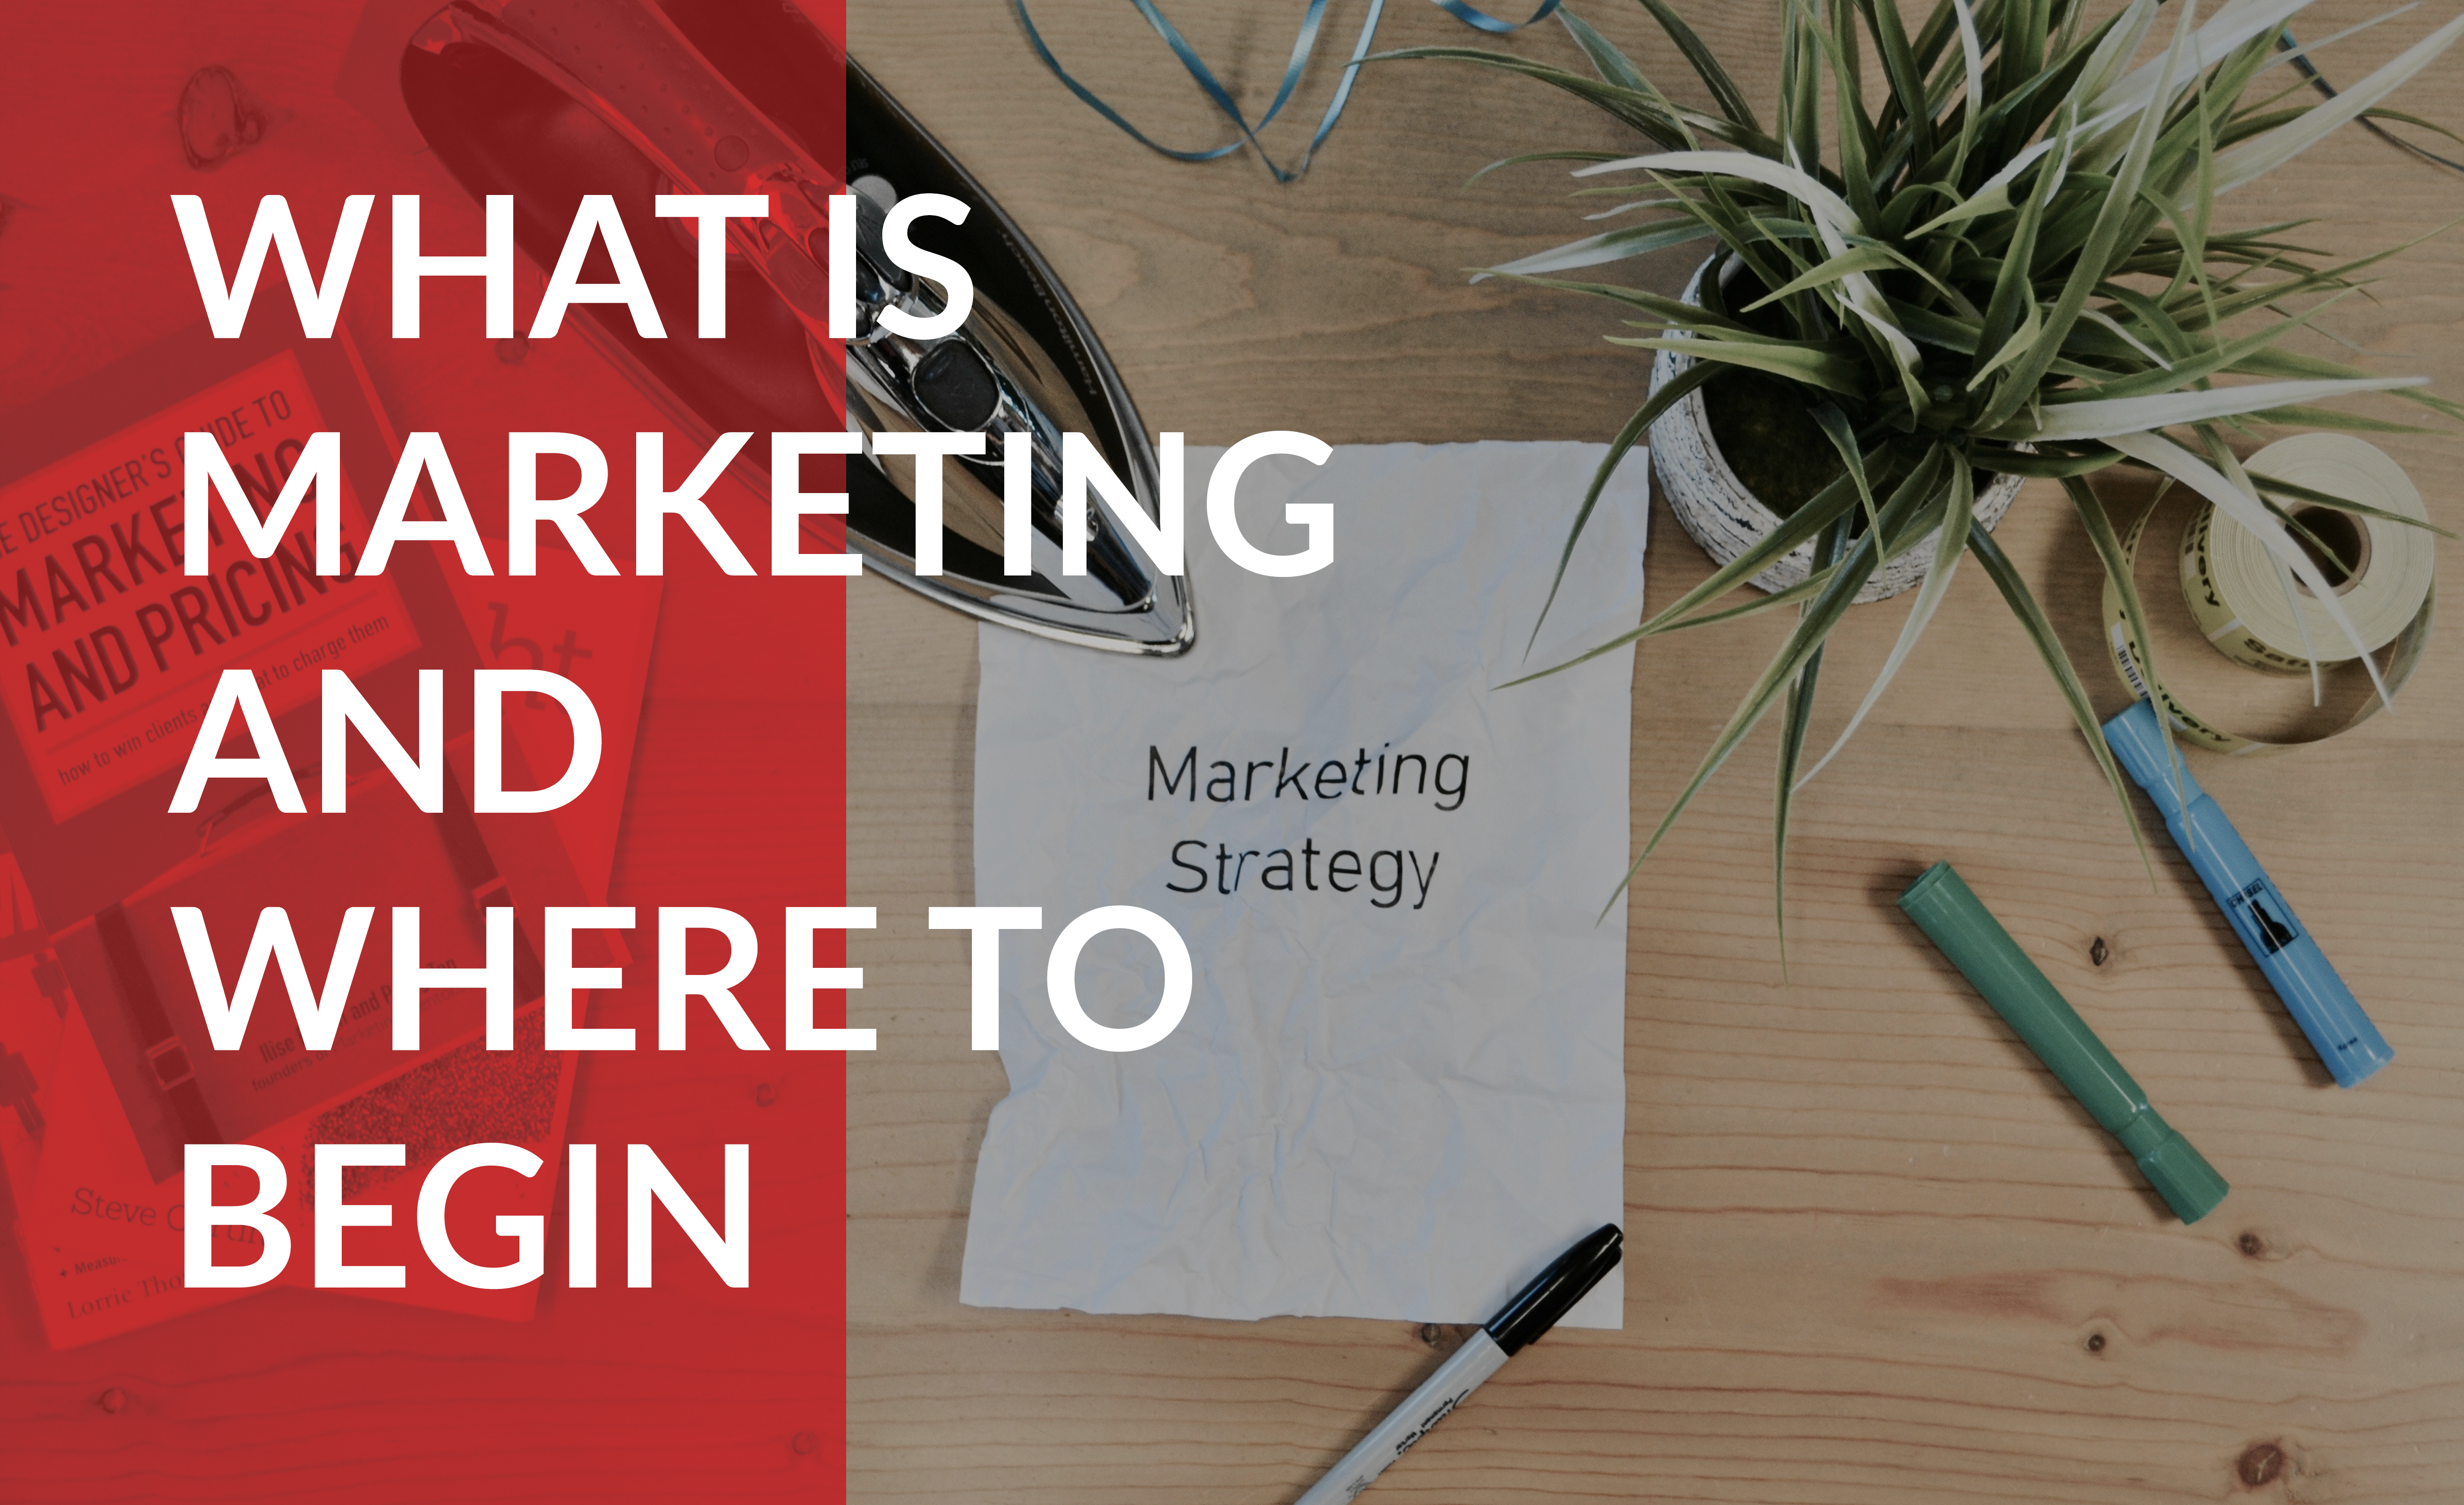 What is marketing and where to begin